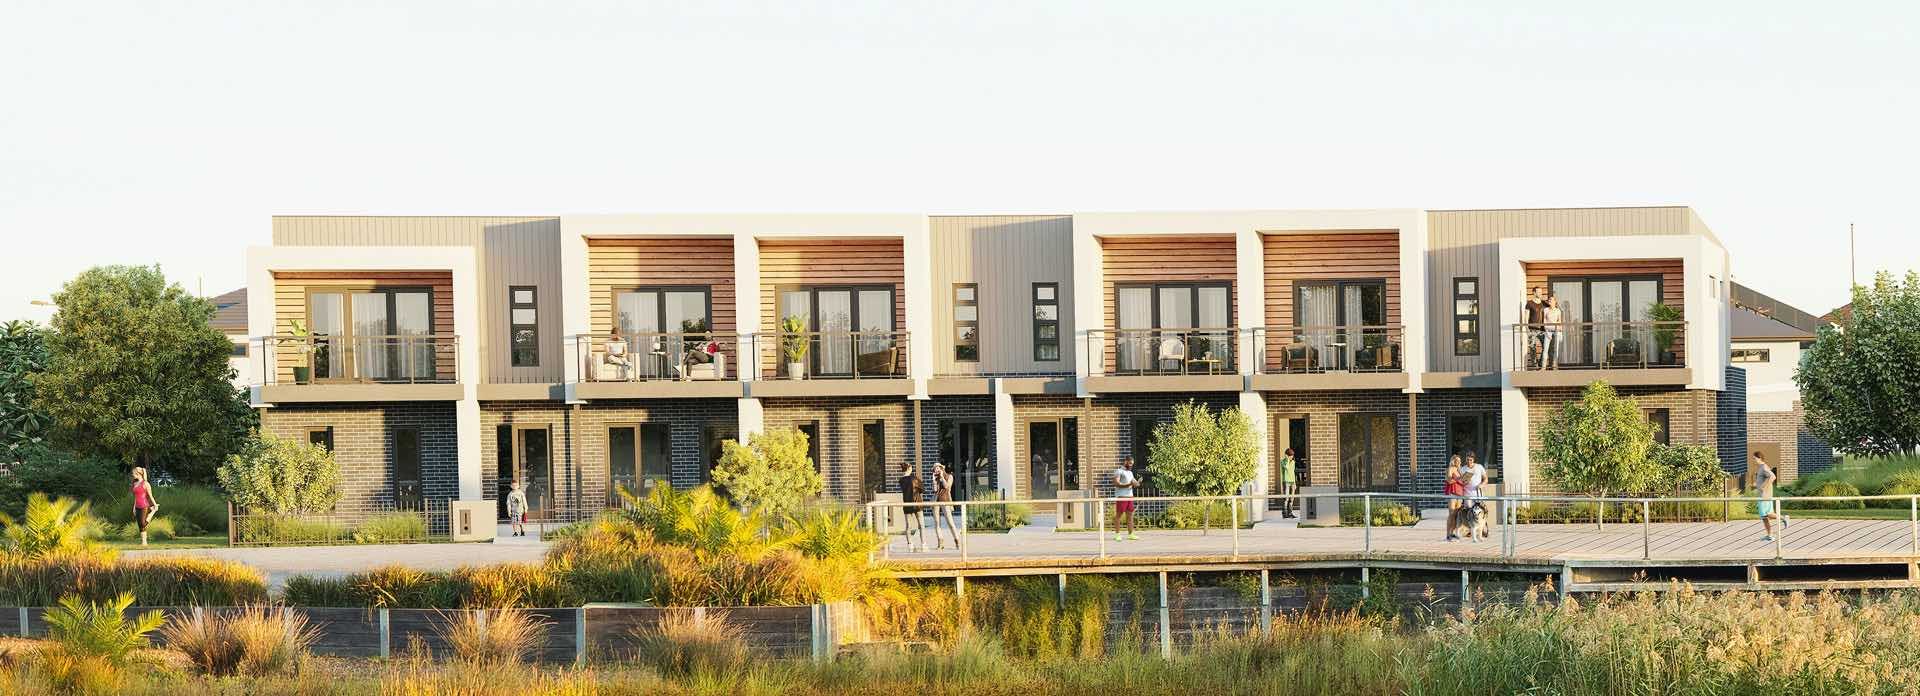 Mosaic Townhouses Estate - Lalor Render